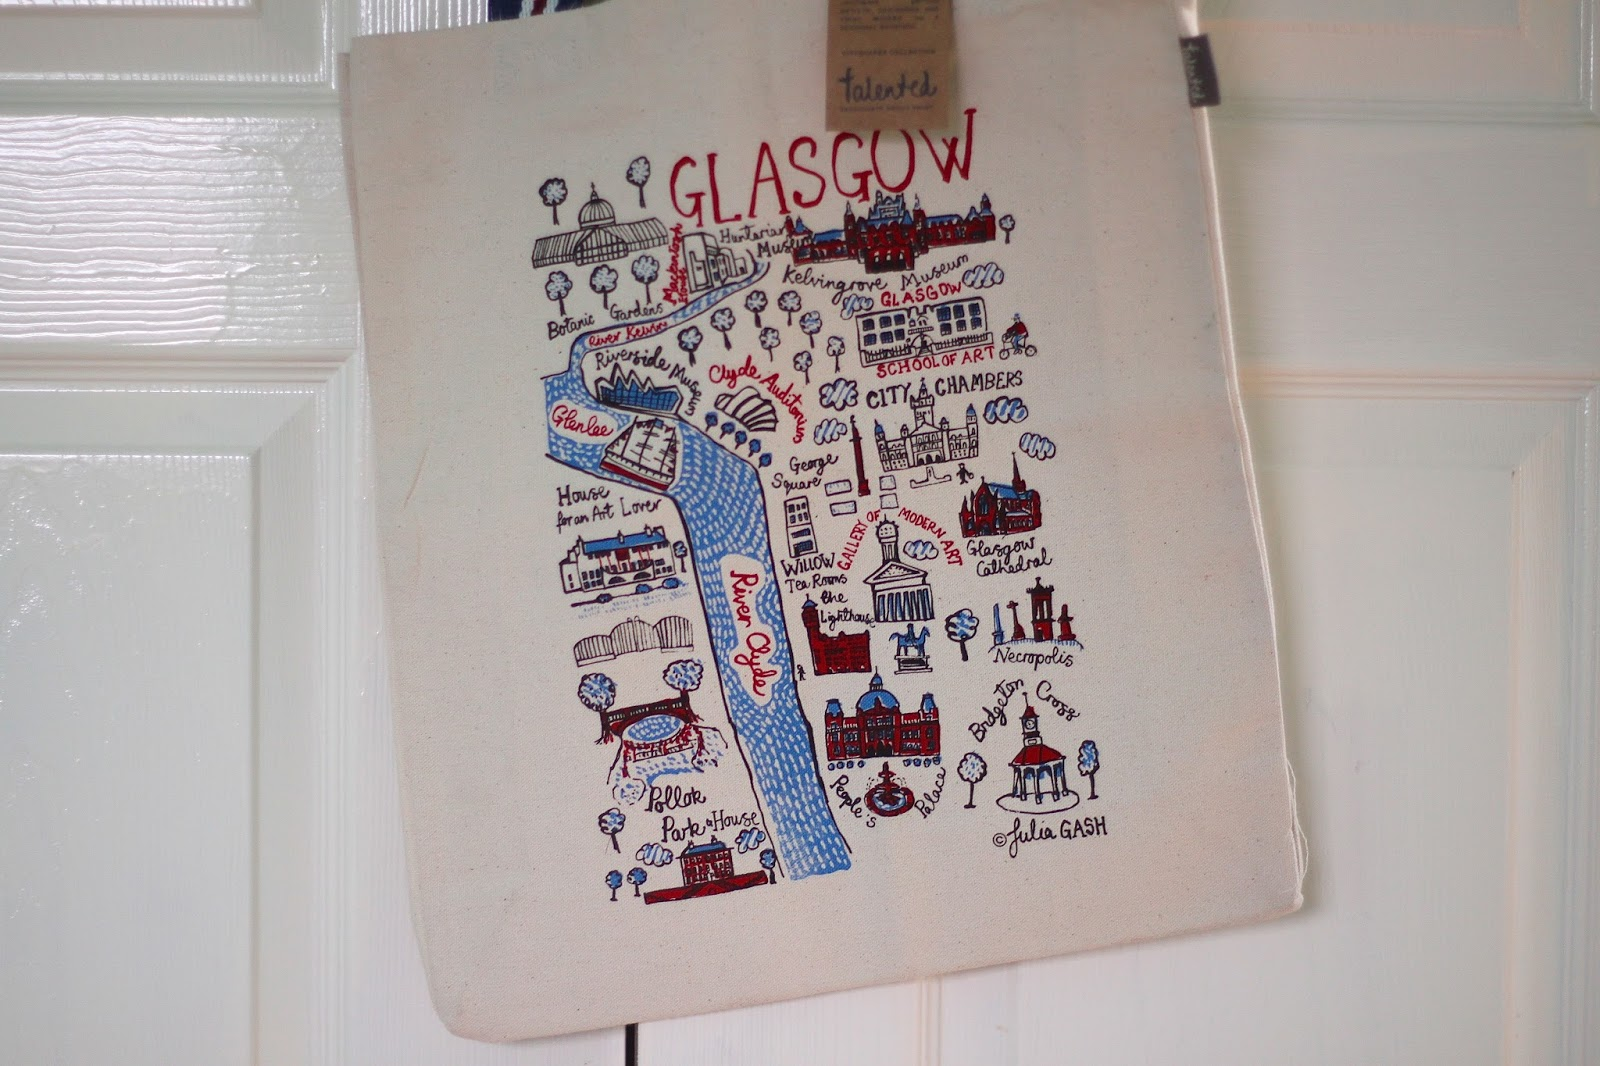 Talented Cityscape Canvas tote Bag designed by Julia Gash